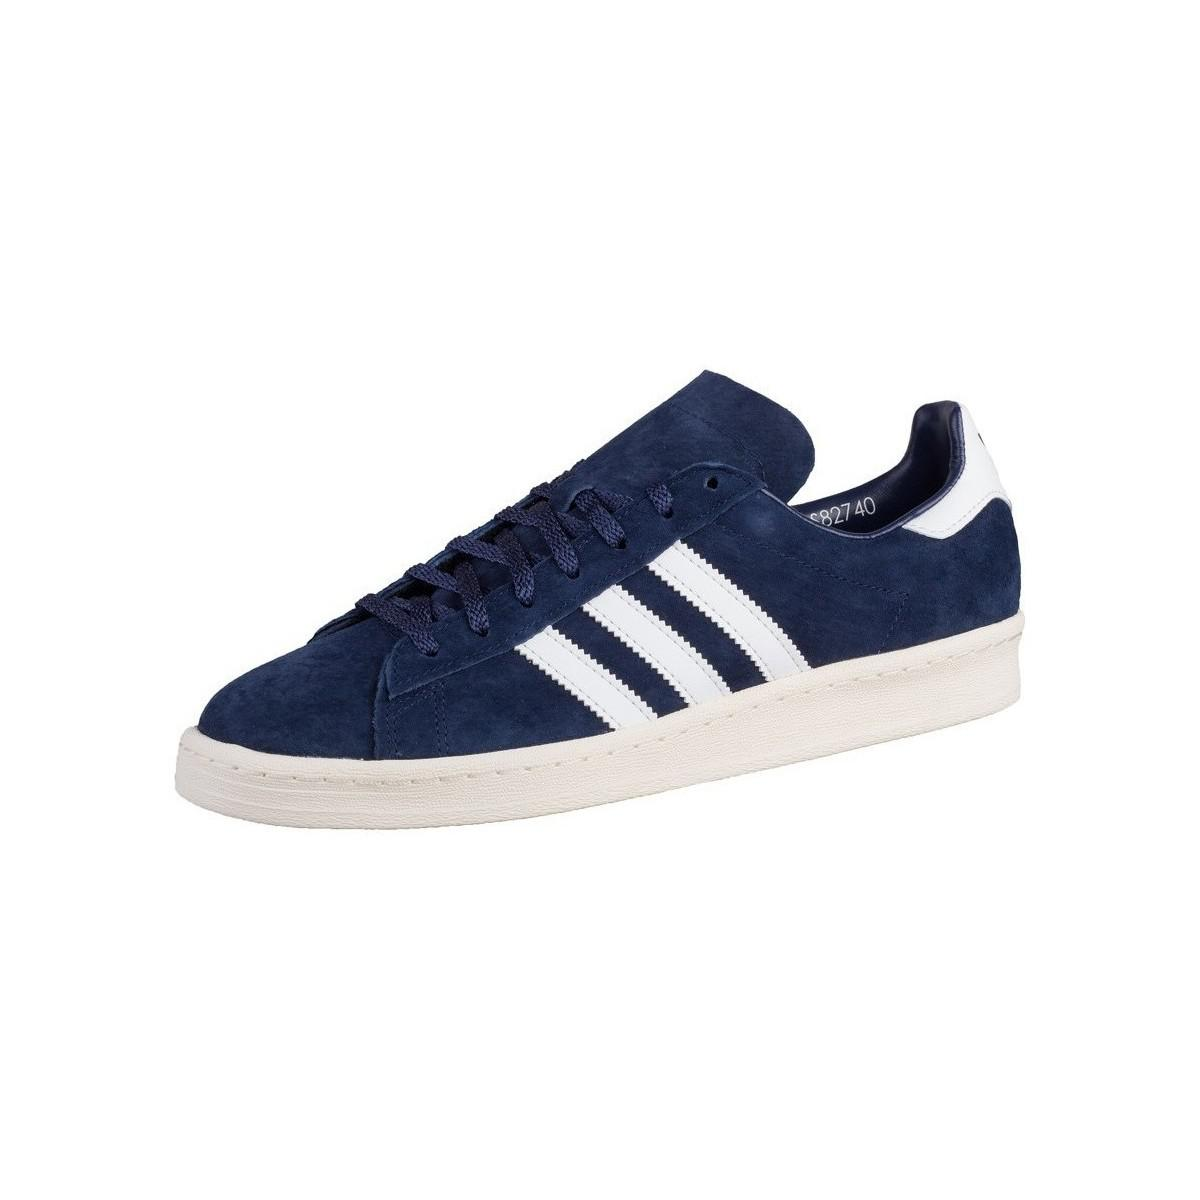 reputable site d17a9 2fb92 adidas Campus 80s Japan Pack Vntg Mens Shoes (trainers) In W